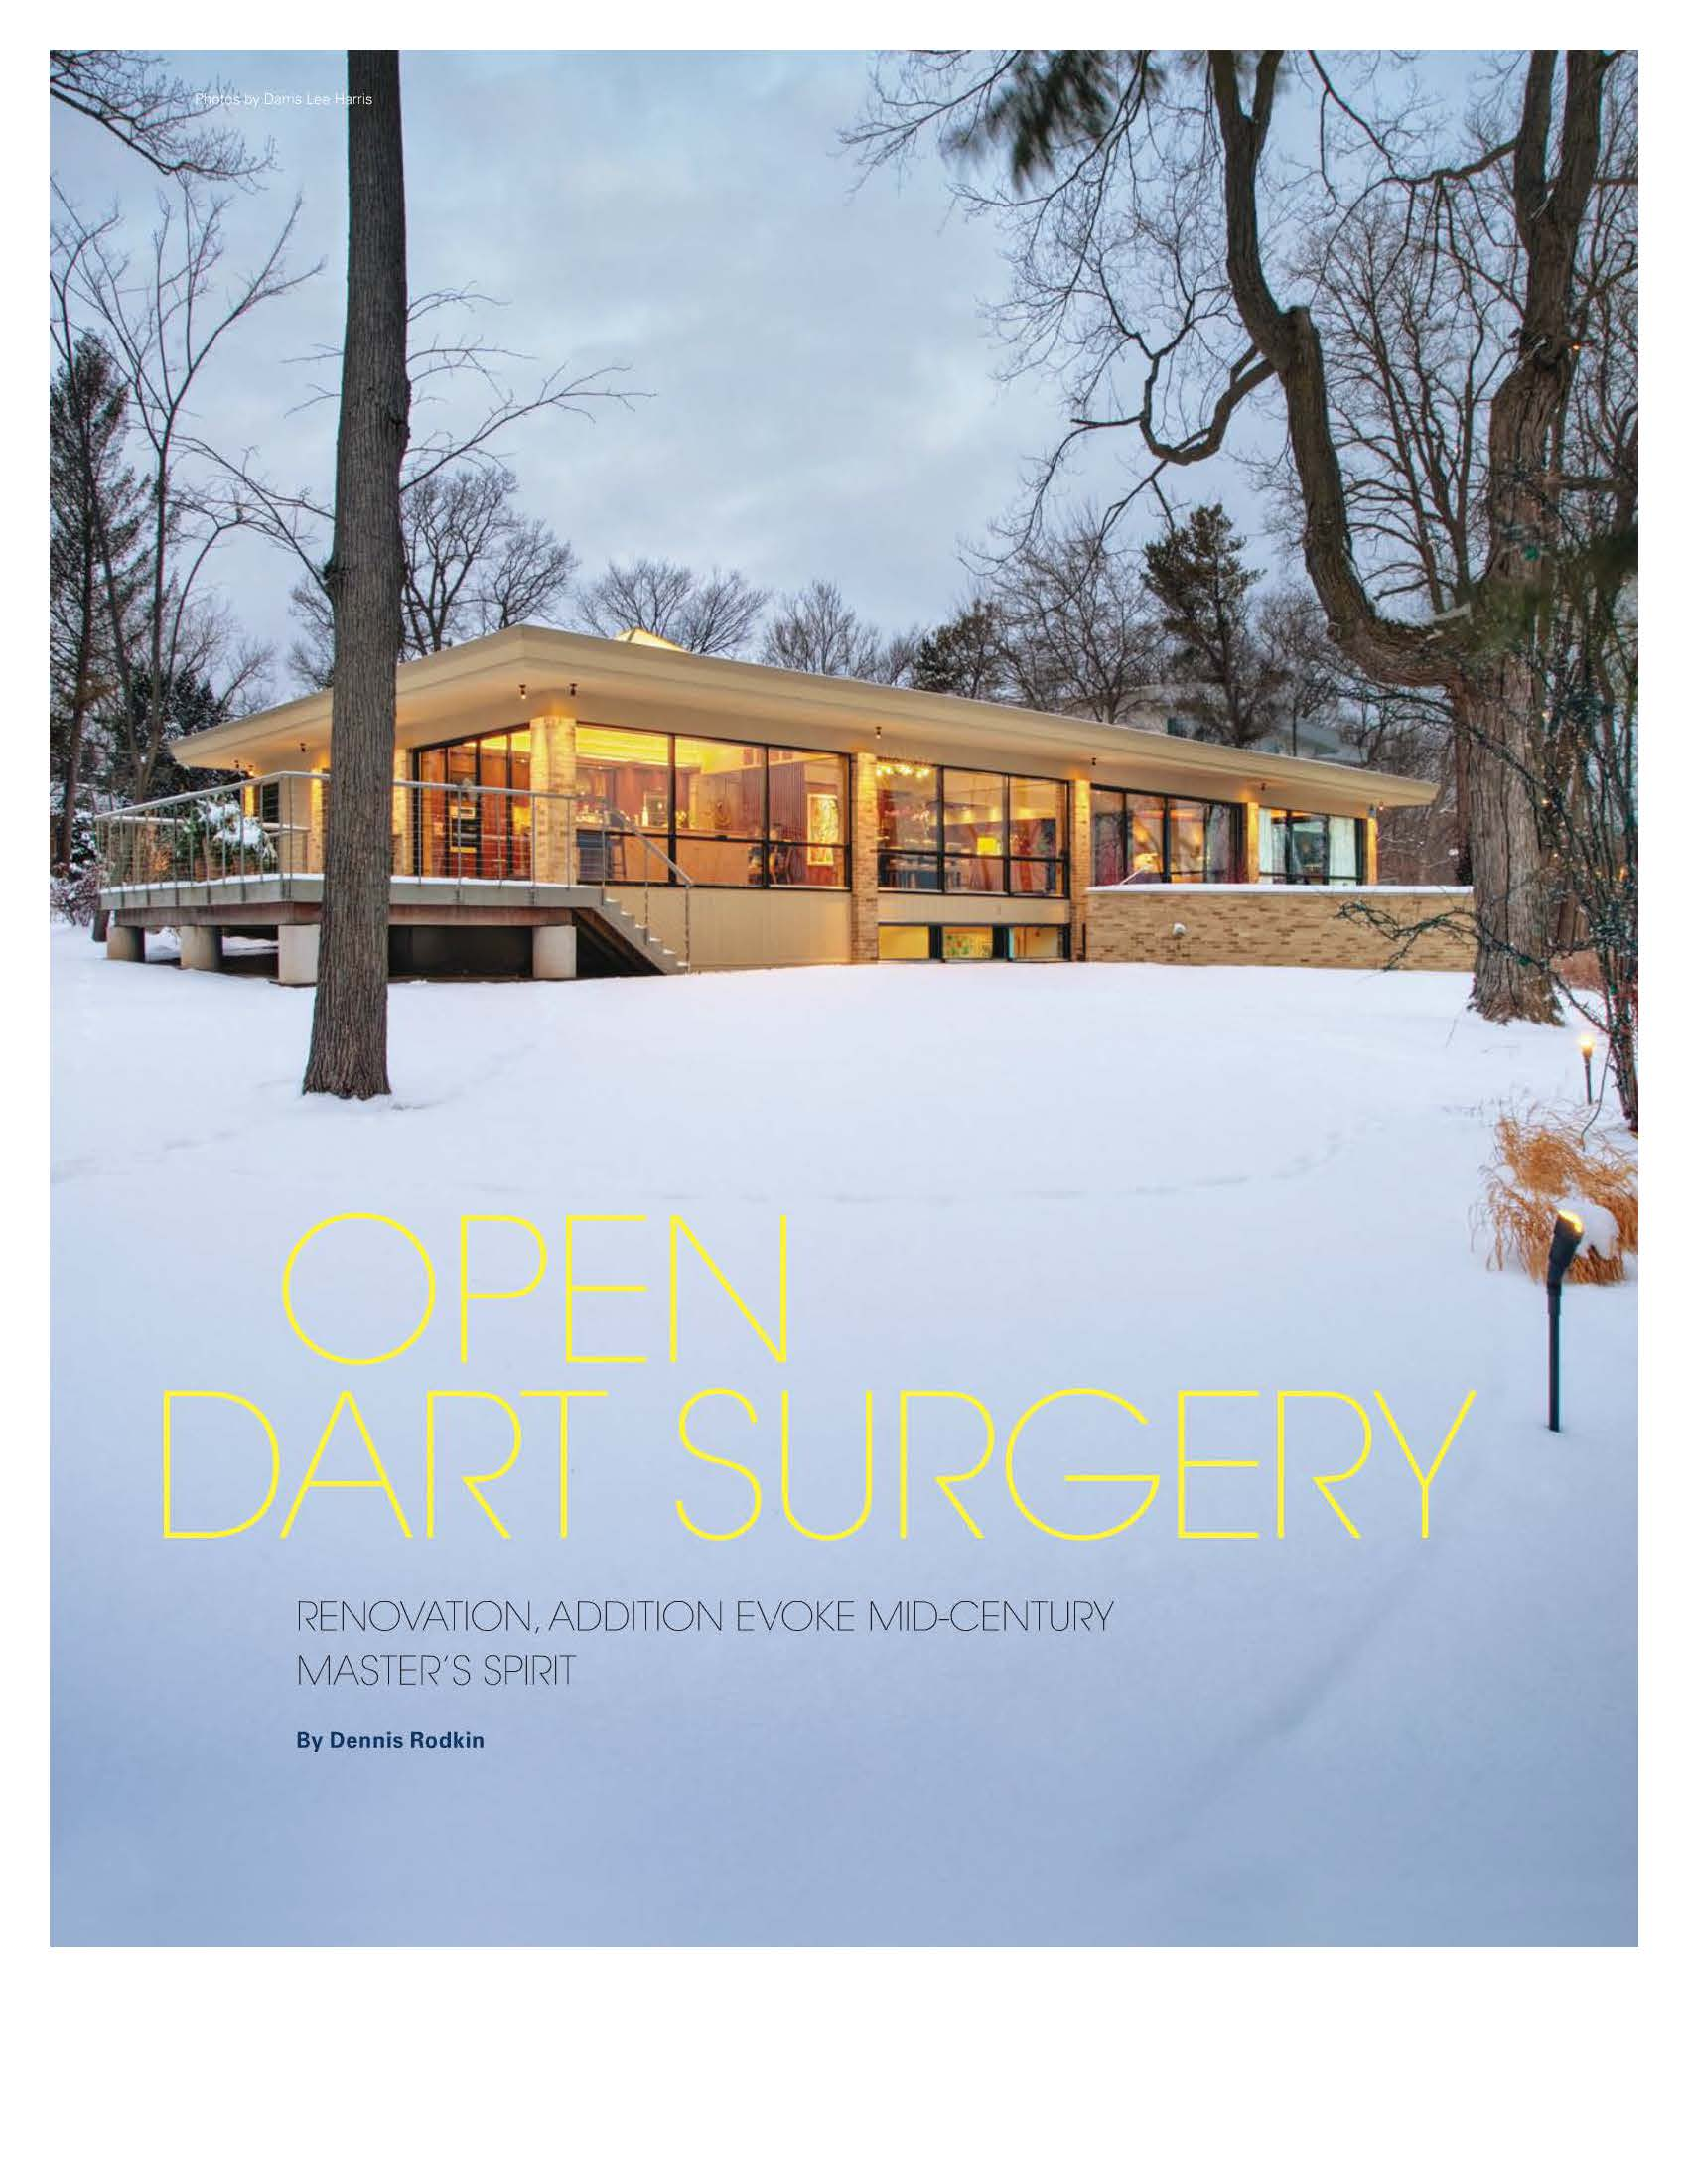 2012 Dart House Chicago Architect_Page_2.jpg